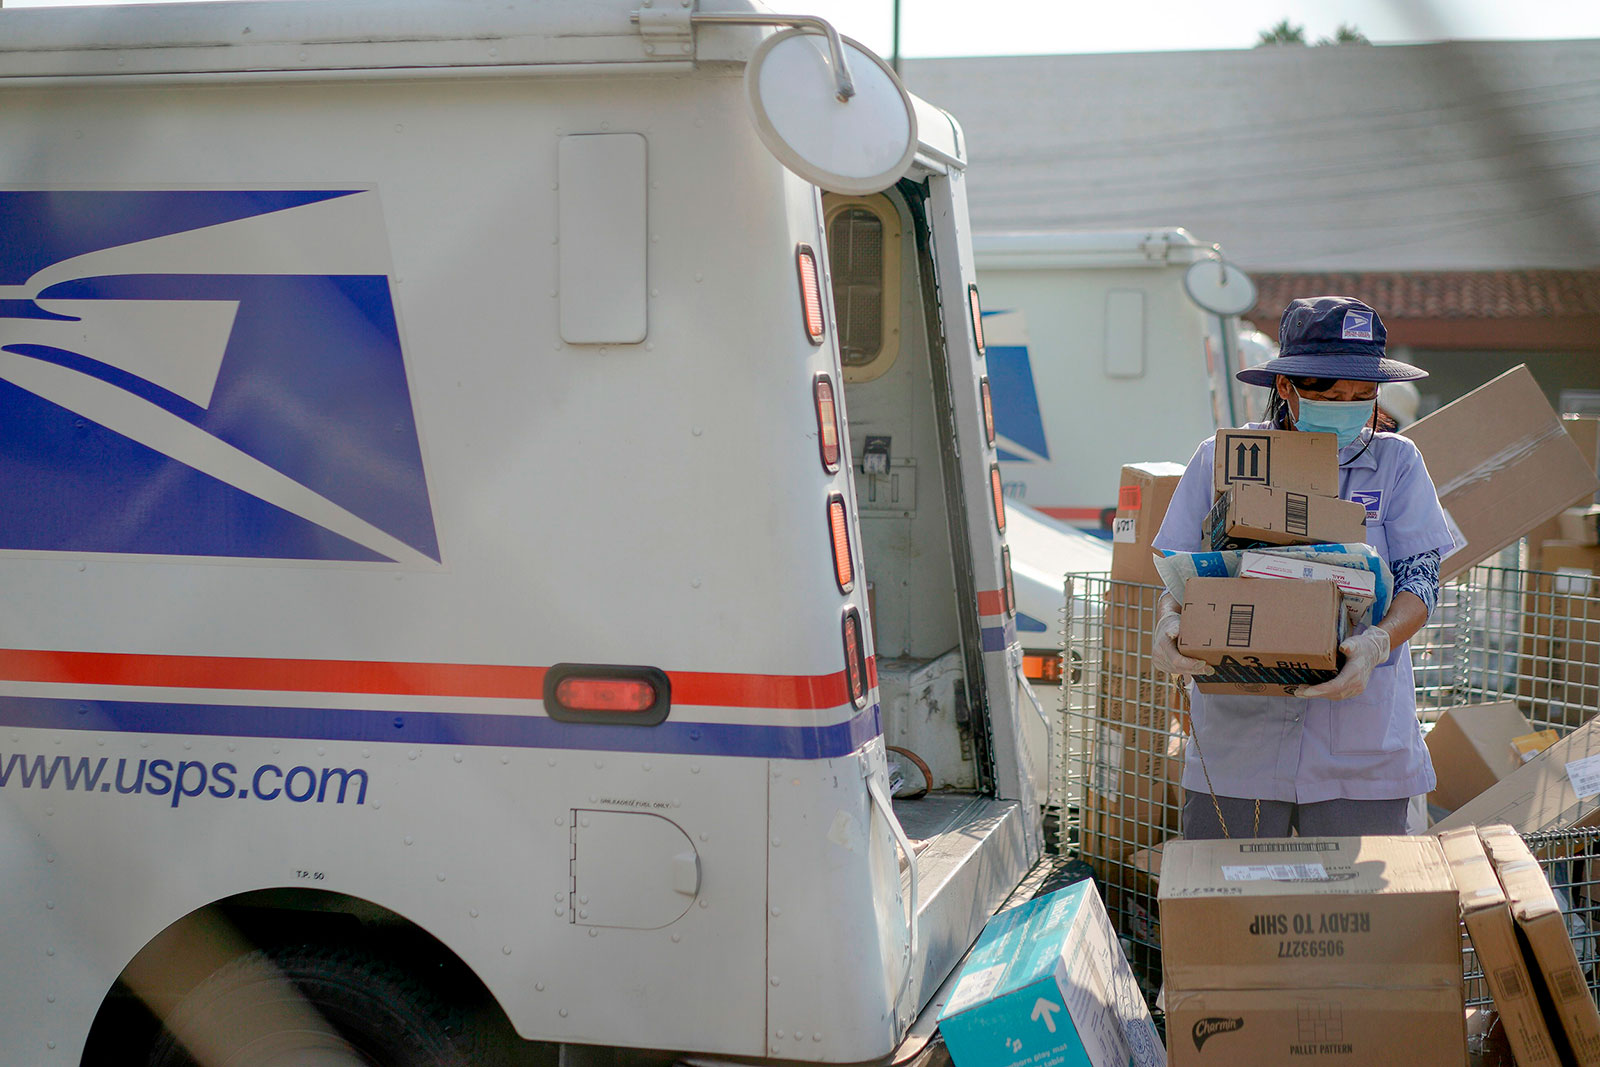 In a court decision Monday, Judge Gerald McHugh of the Eastern District of Pennsylvania says the Postal Service can't restrict extra or late trips for mail delivery and can't prohibit overtime so its workers can deliver mail.